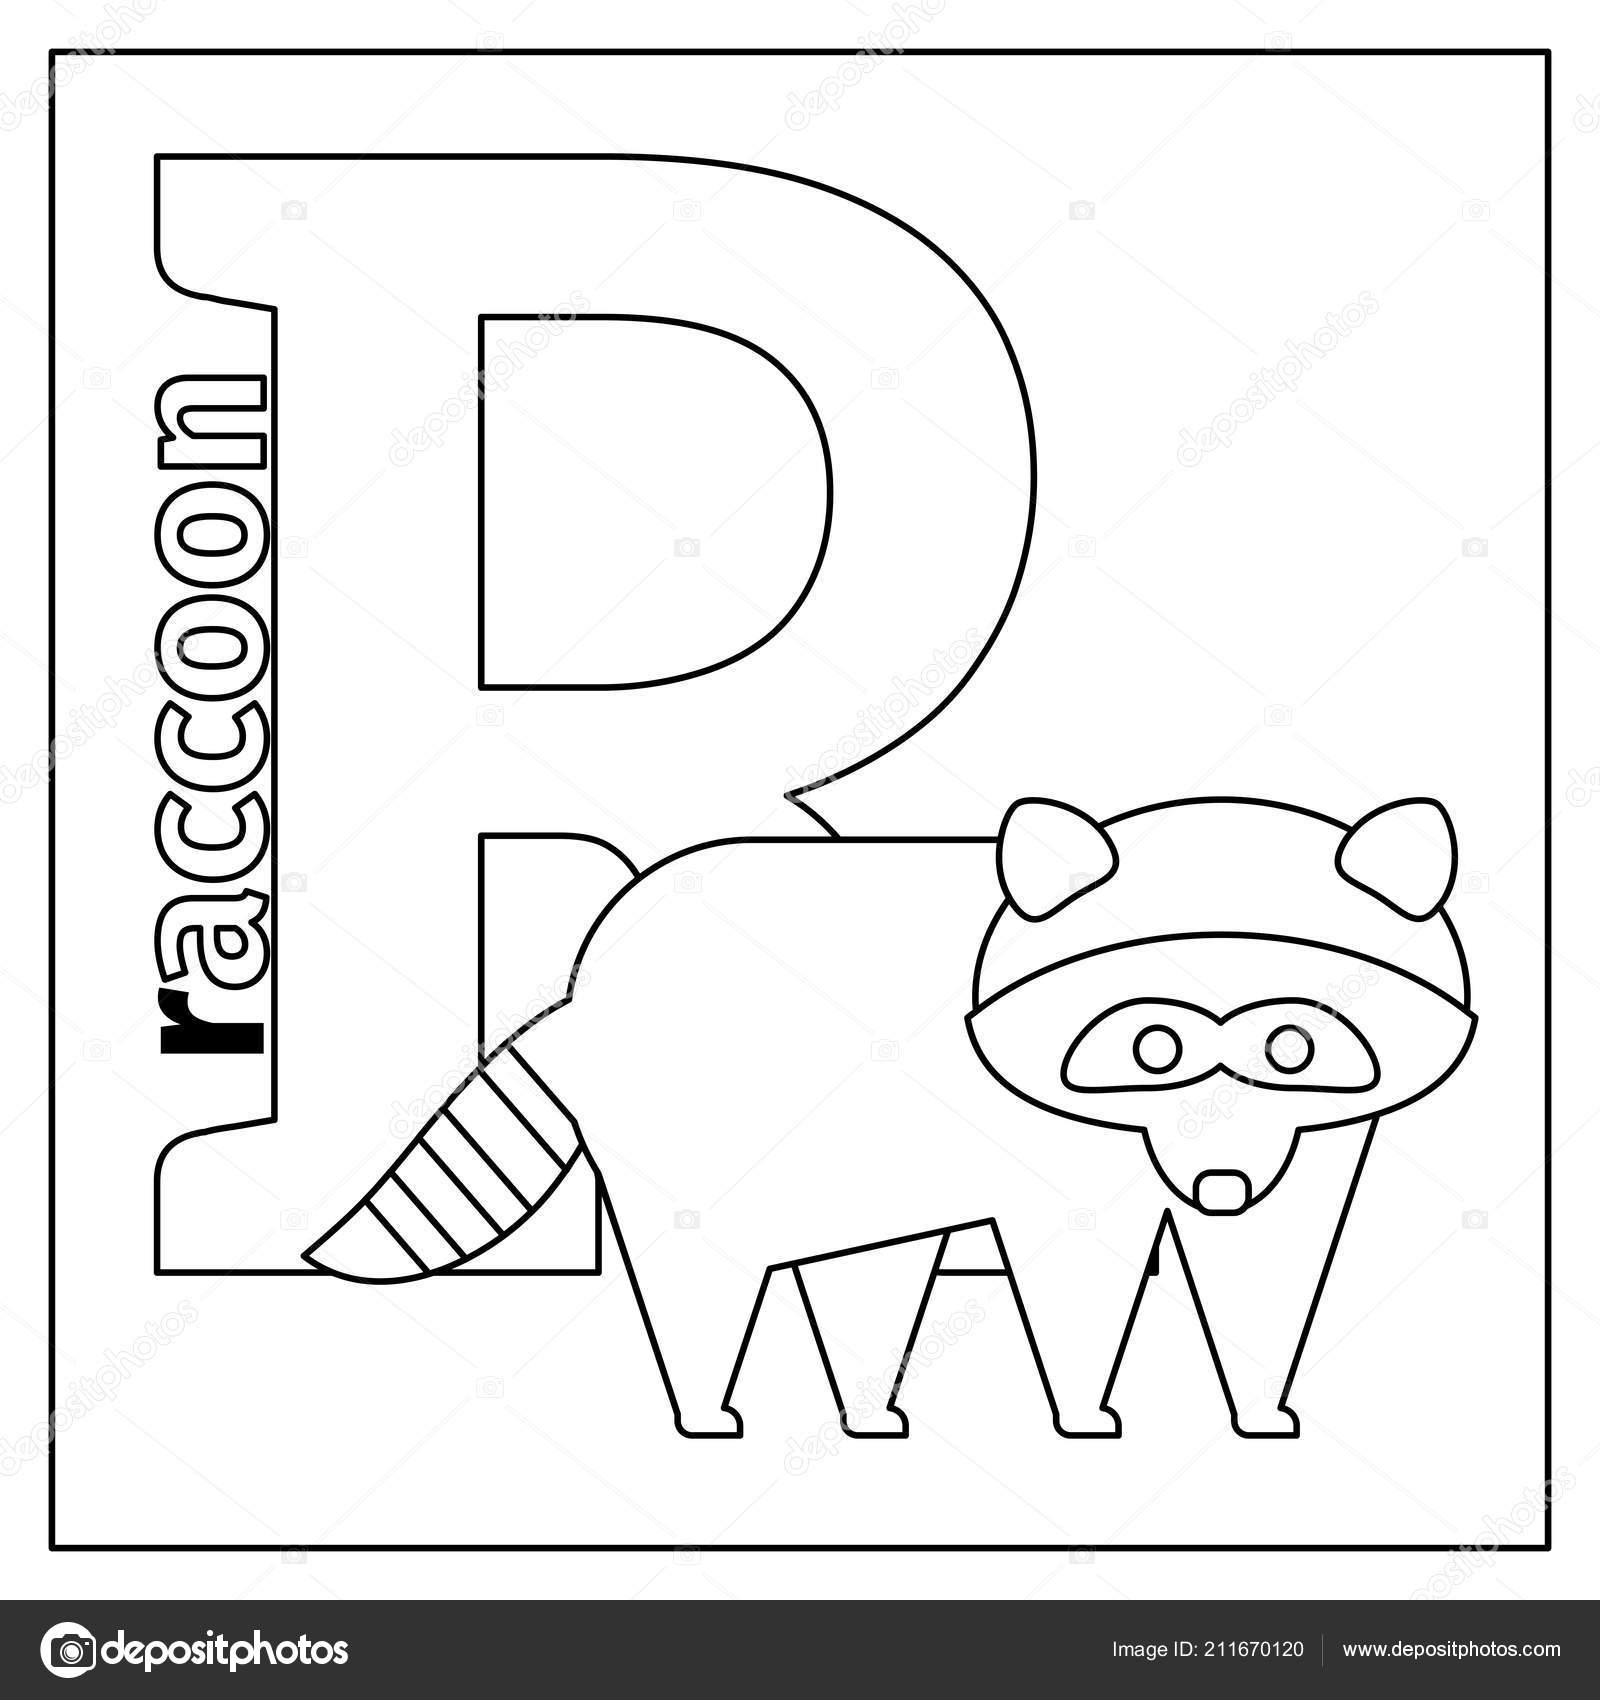 Letter R Coloring Page Raccoon Letter R Coloring Page